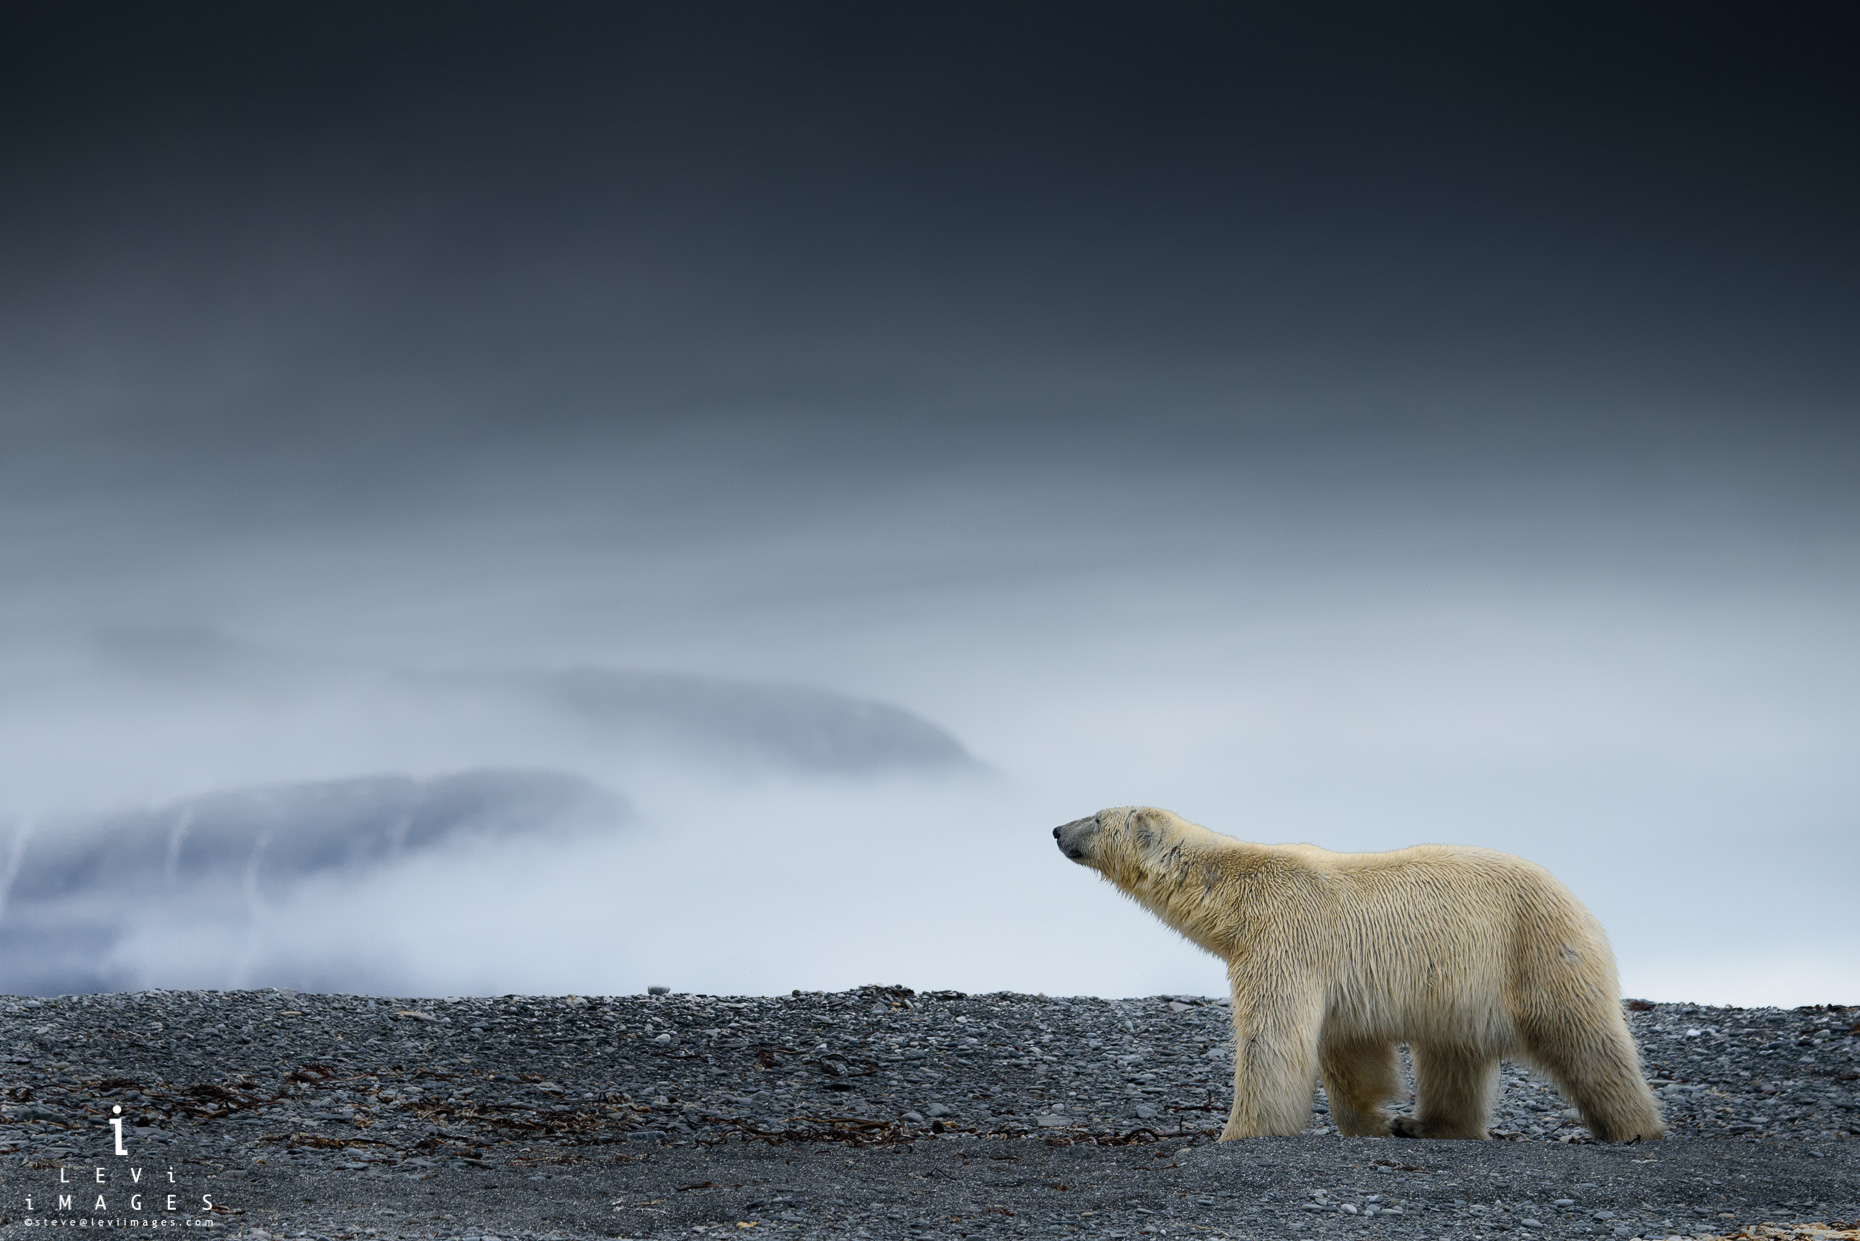 Polar bear (Ursus maritimus) on land with mountains obscured by fog. Svalbard, Norway